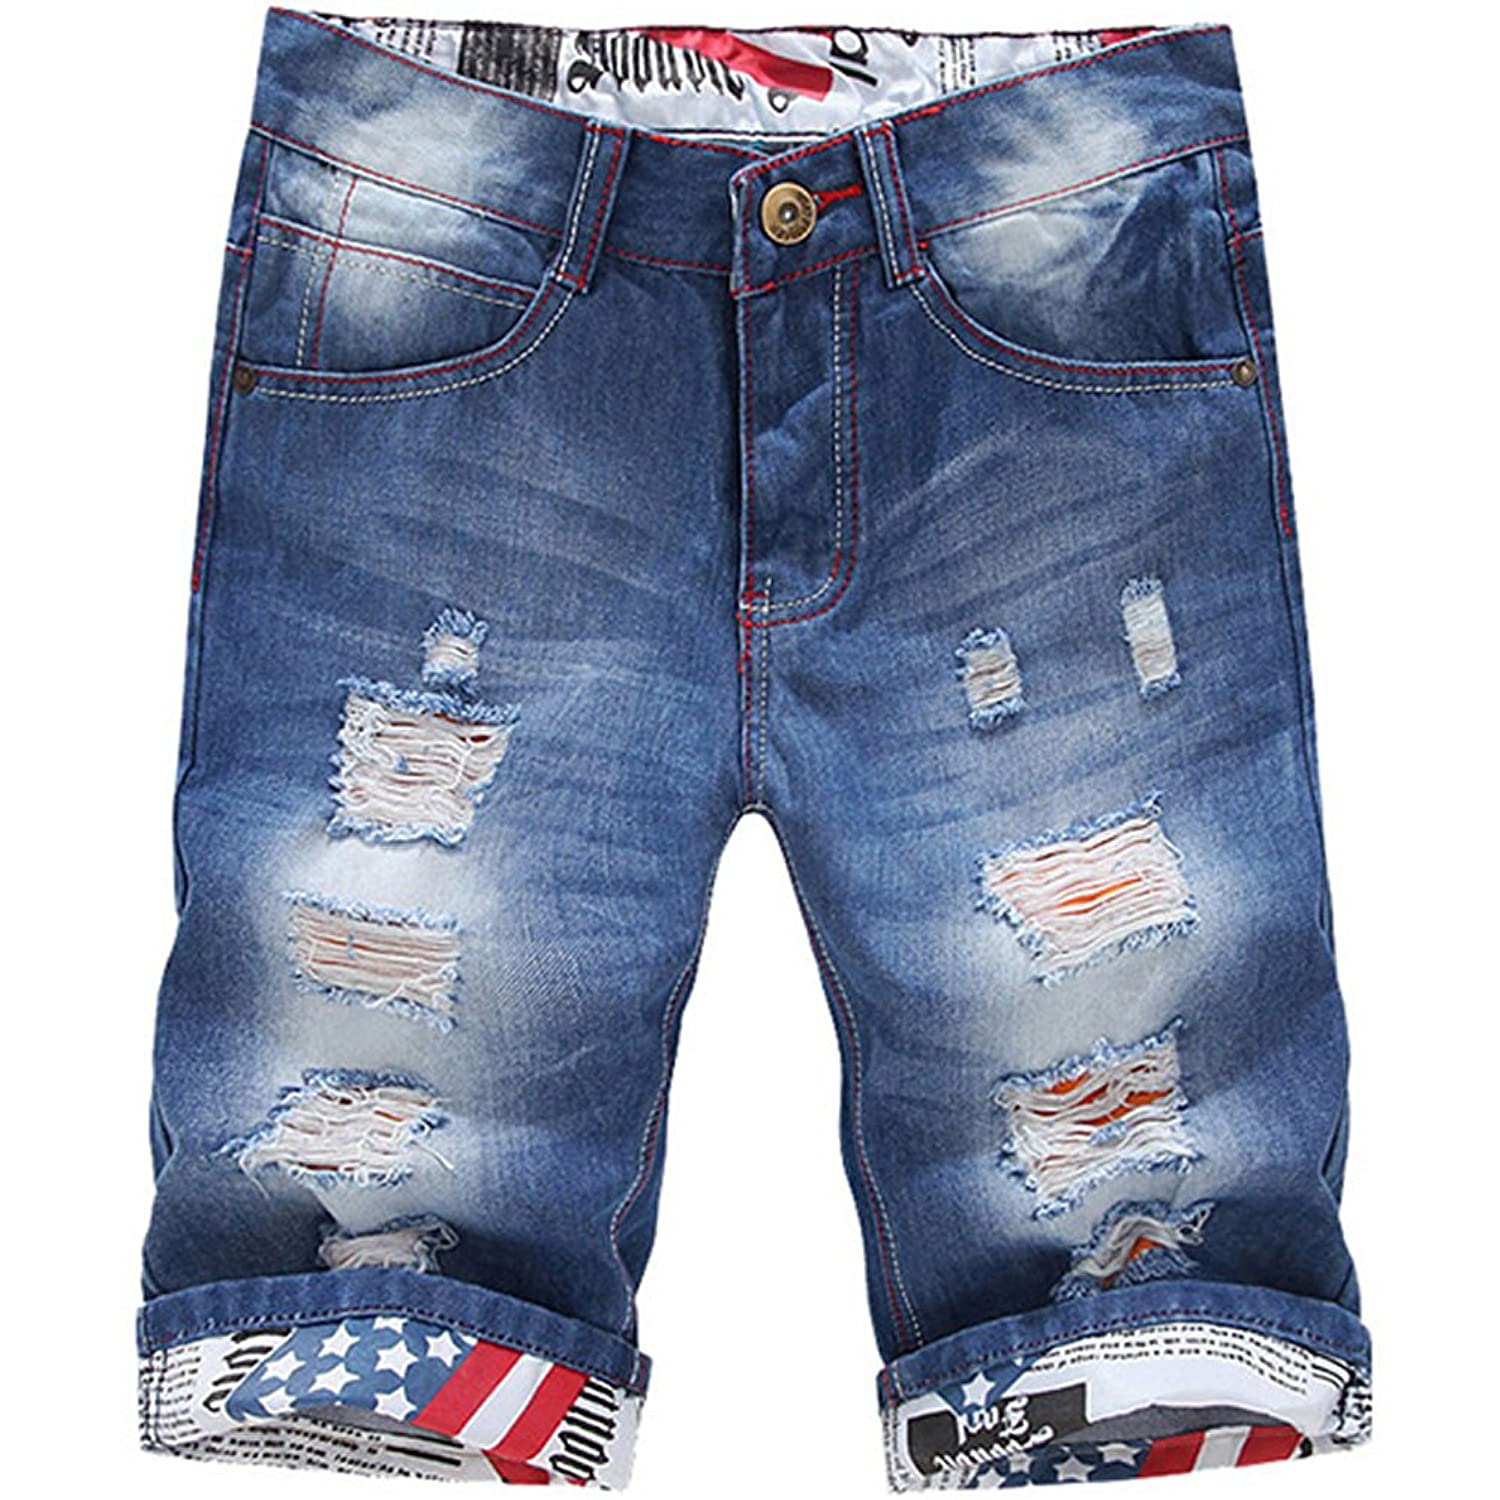 ClothingLoves Men's Denim Ripped Mid Waist Plus Size Bleached ...